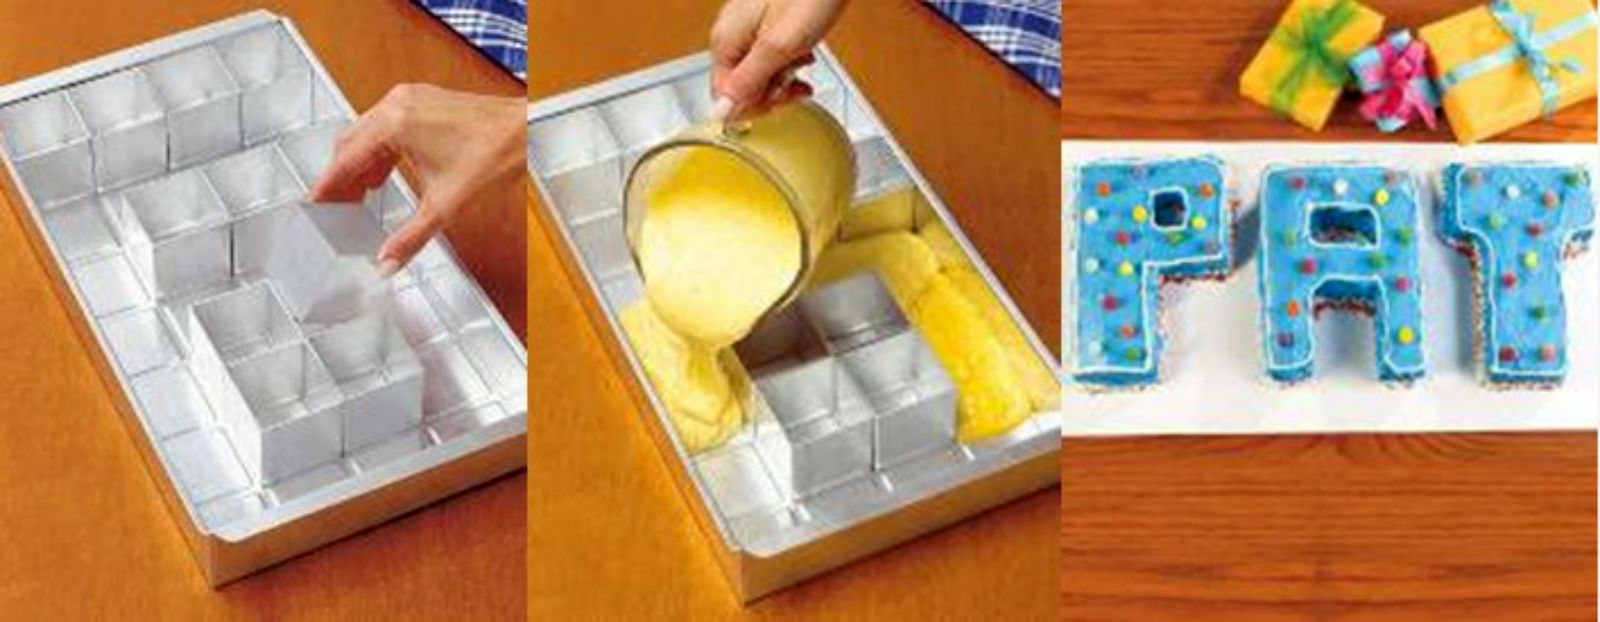 Design Your Own Cake Mold : Letter Cake Pan Rectangular Shape Set Can Make Different ...